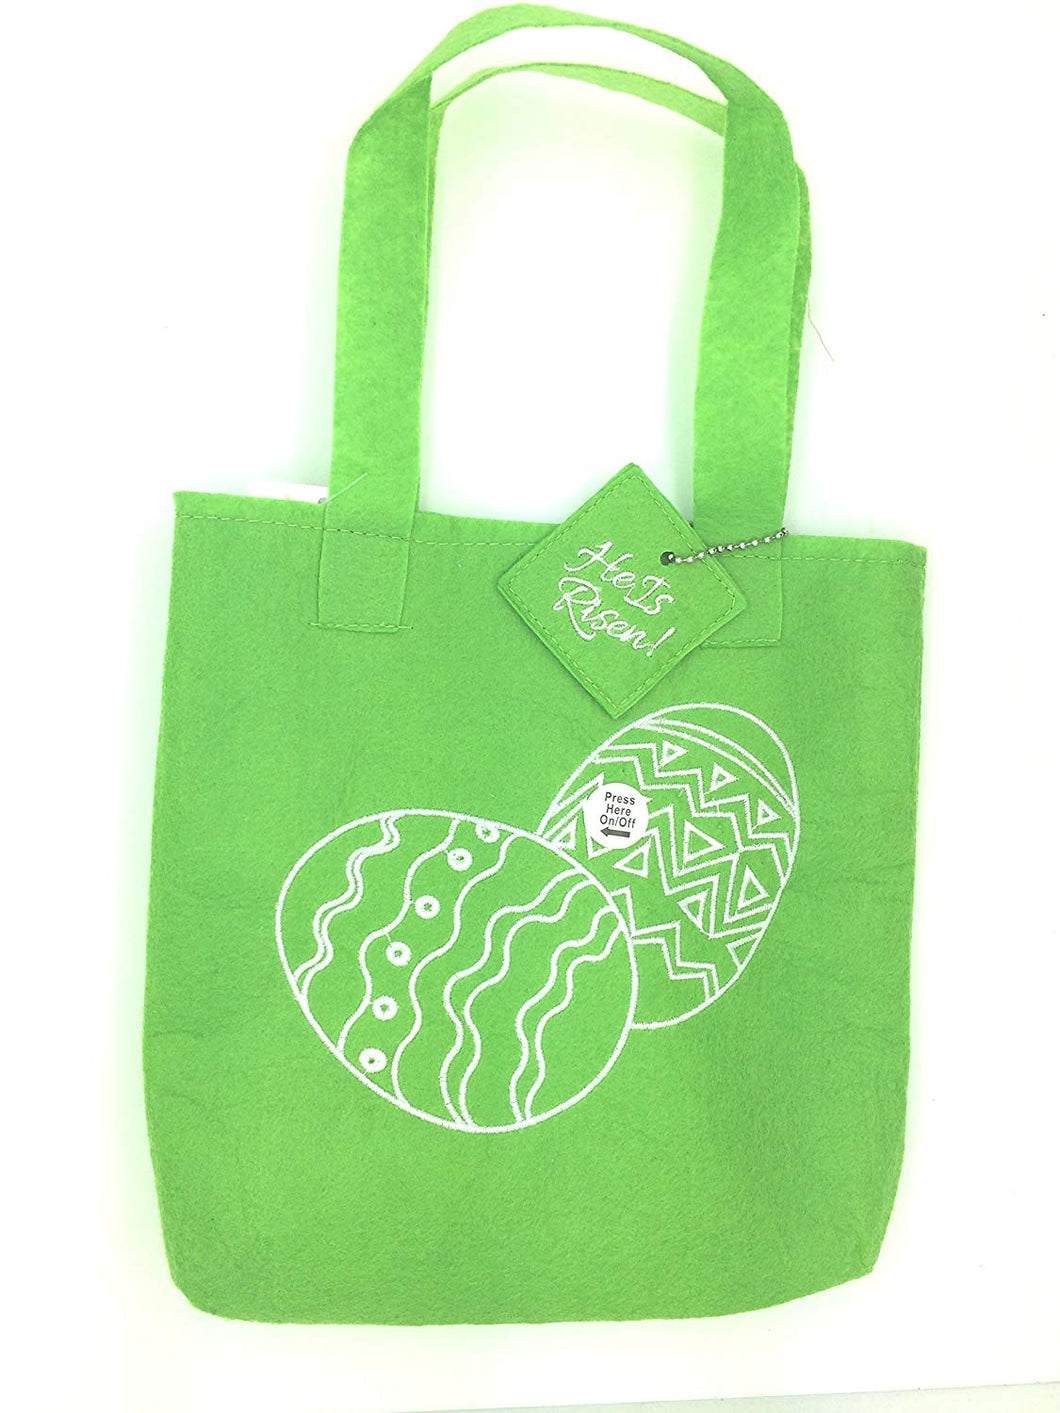 Christian Easter Fiber Optic Tote Gift Bag - Green Bag with Eggs design -